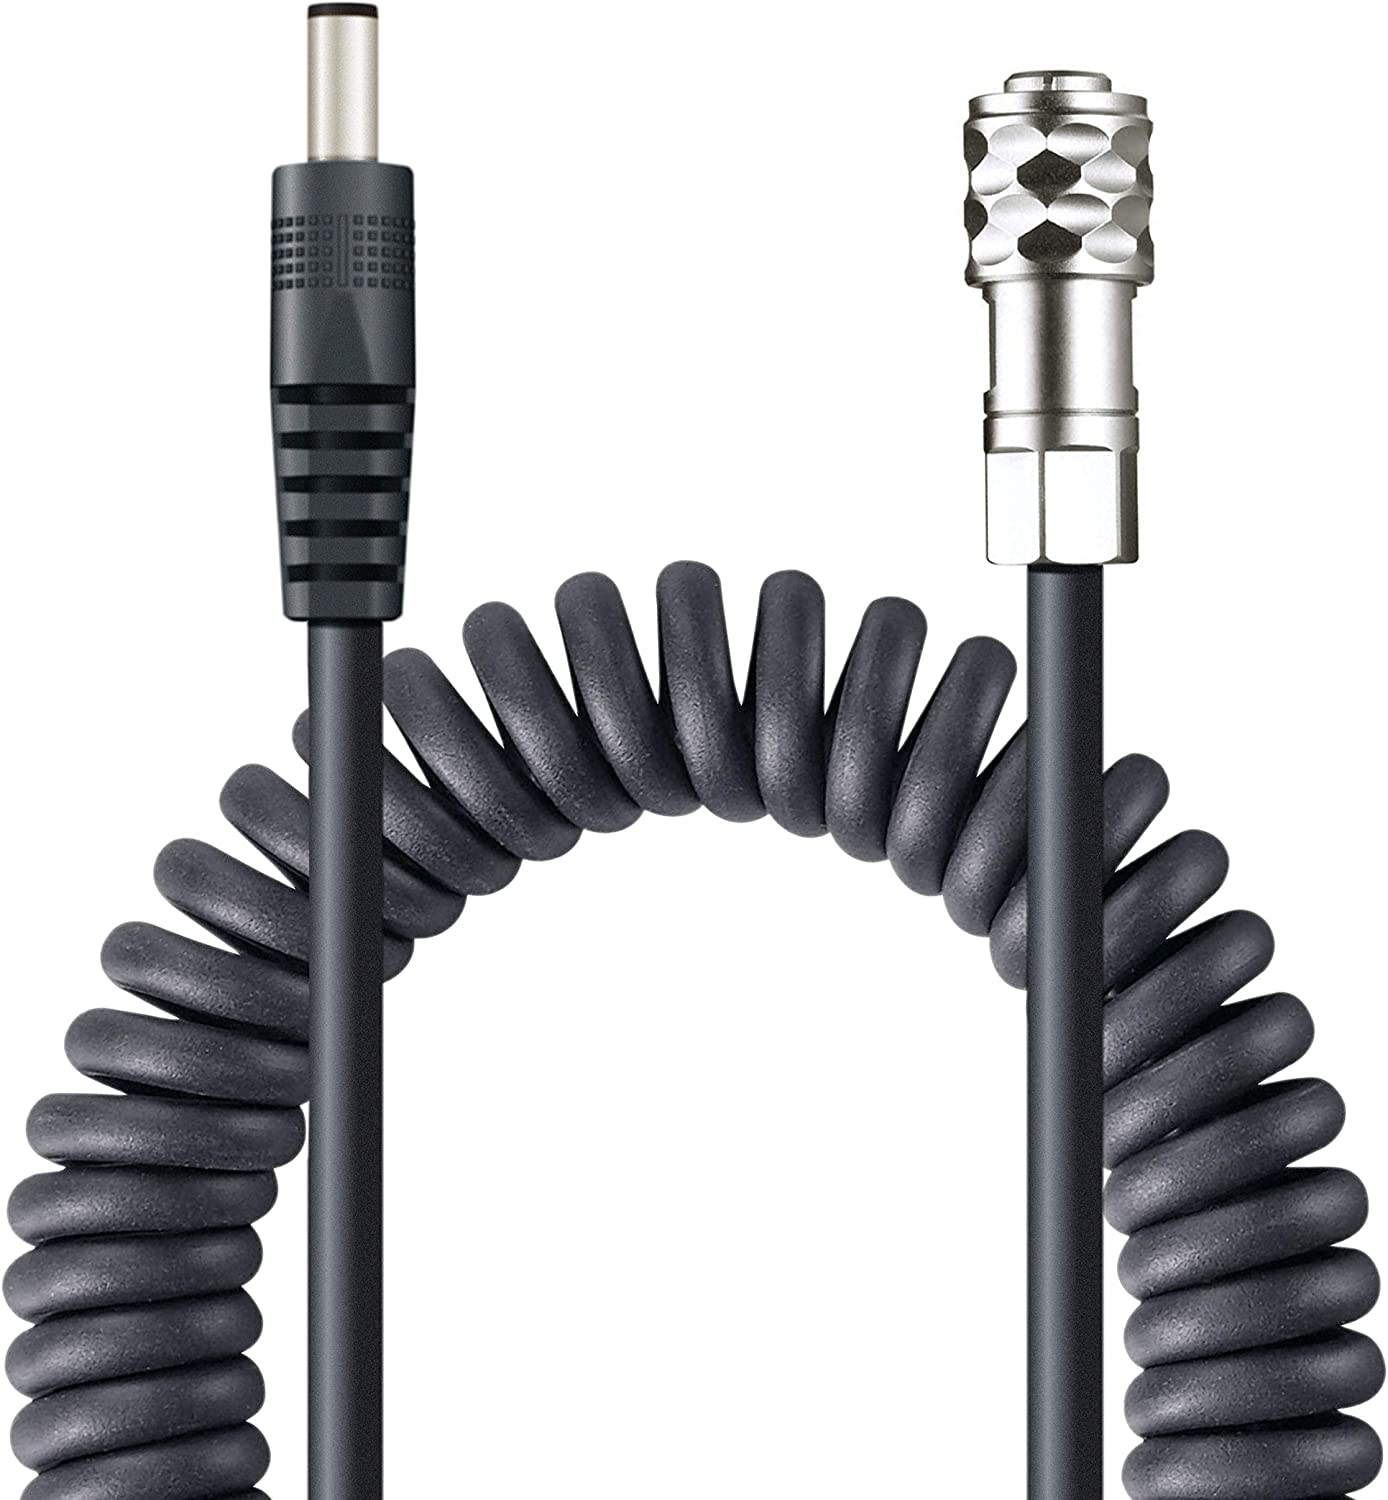 Tilta TA-T01-DC-PC Dc Power Cable BMPCC 4K jaula Blackmagic cámara de cine de bolsillo